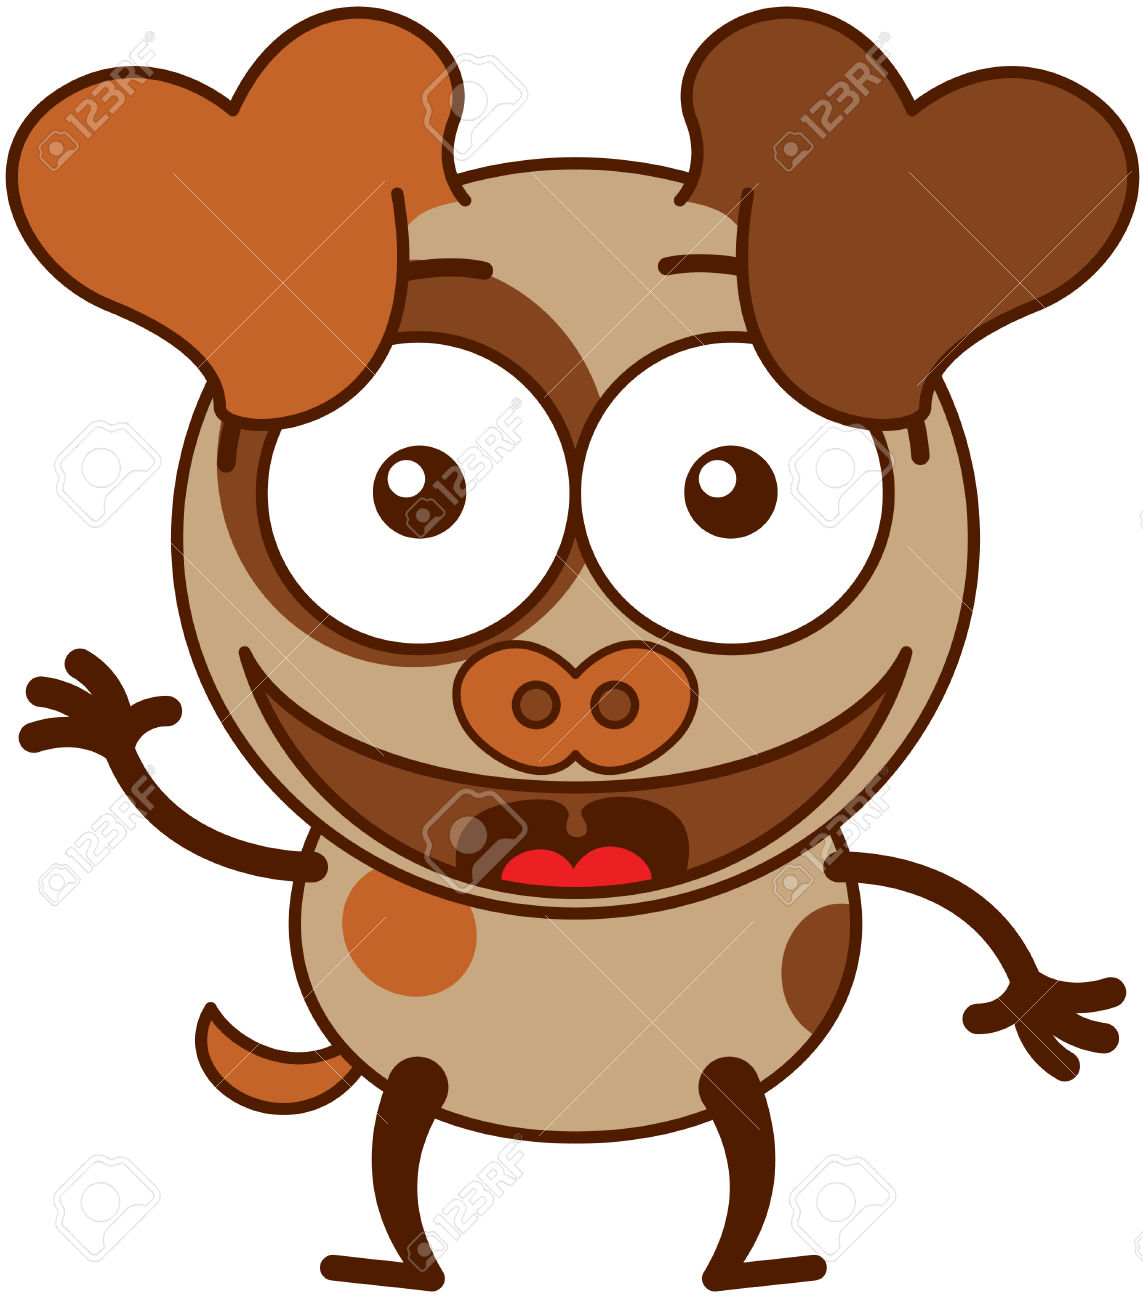 Dog with big ear clipart banner library Cute Brown Dog In Minimalistic Style With Big Hanging Ears Bulging ... banner library